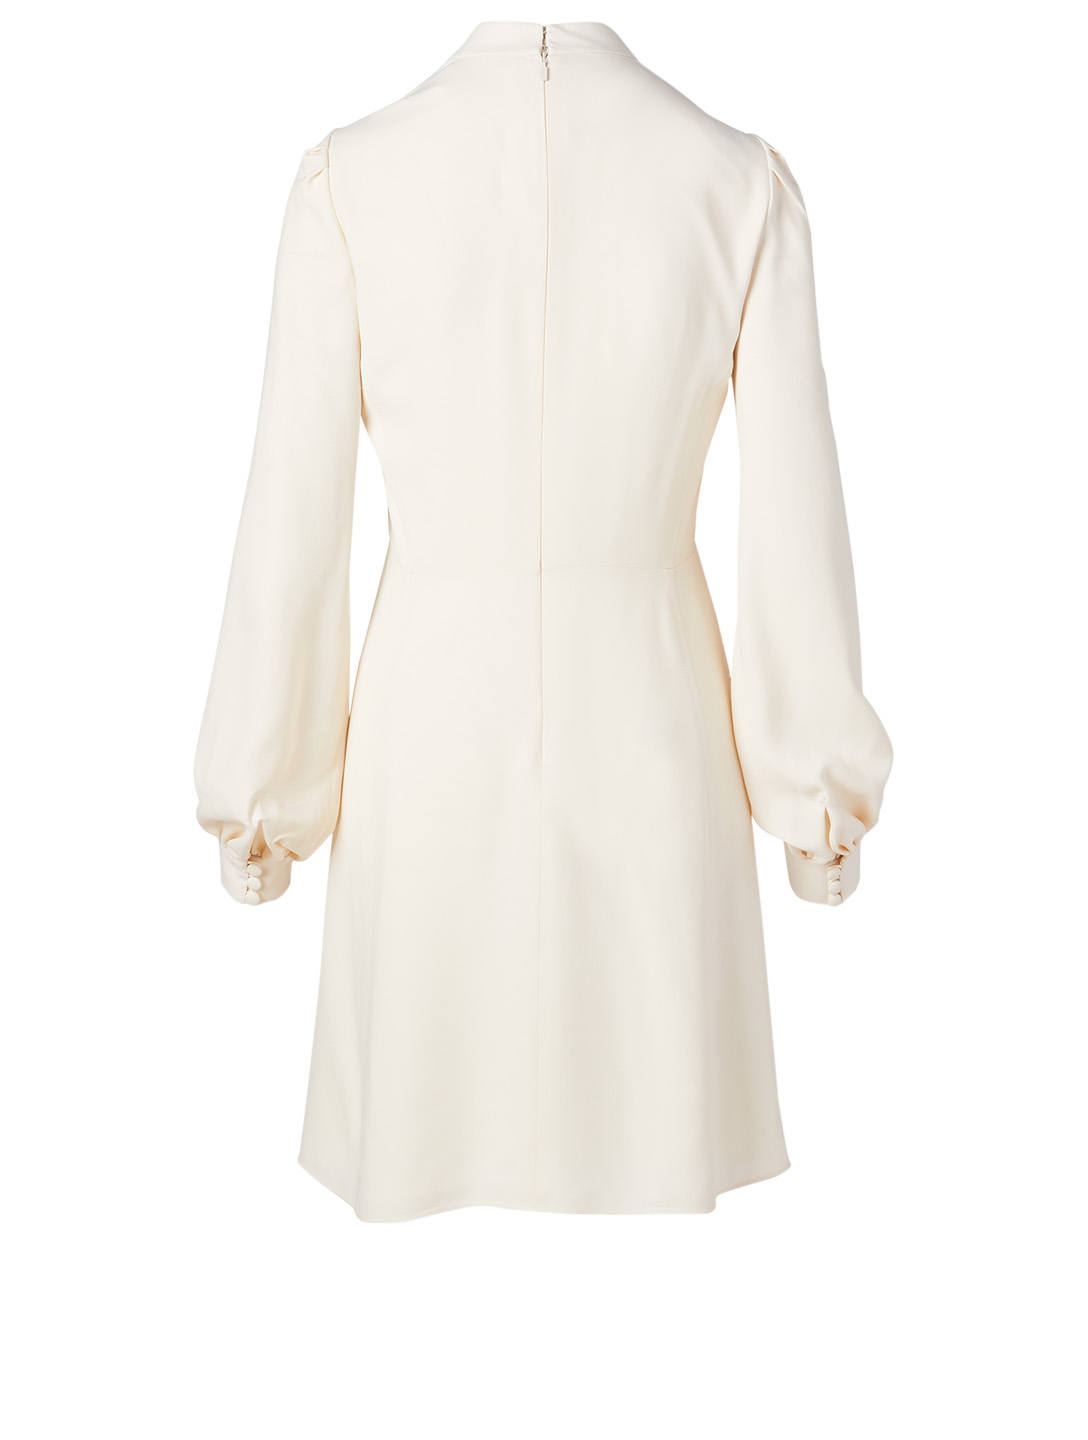 CHLOÉ Buttoned Long-Sleeve Dress Women's White